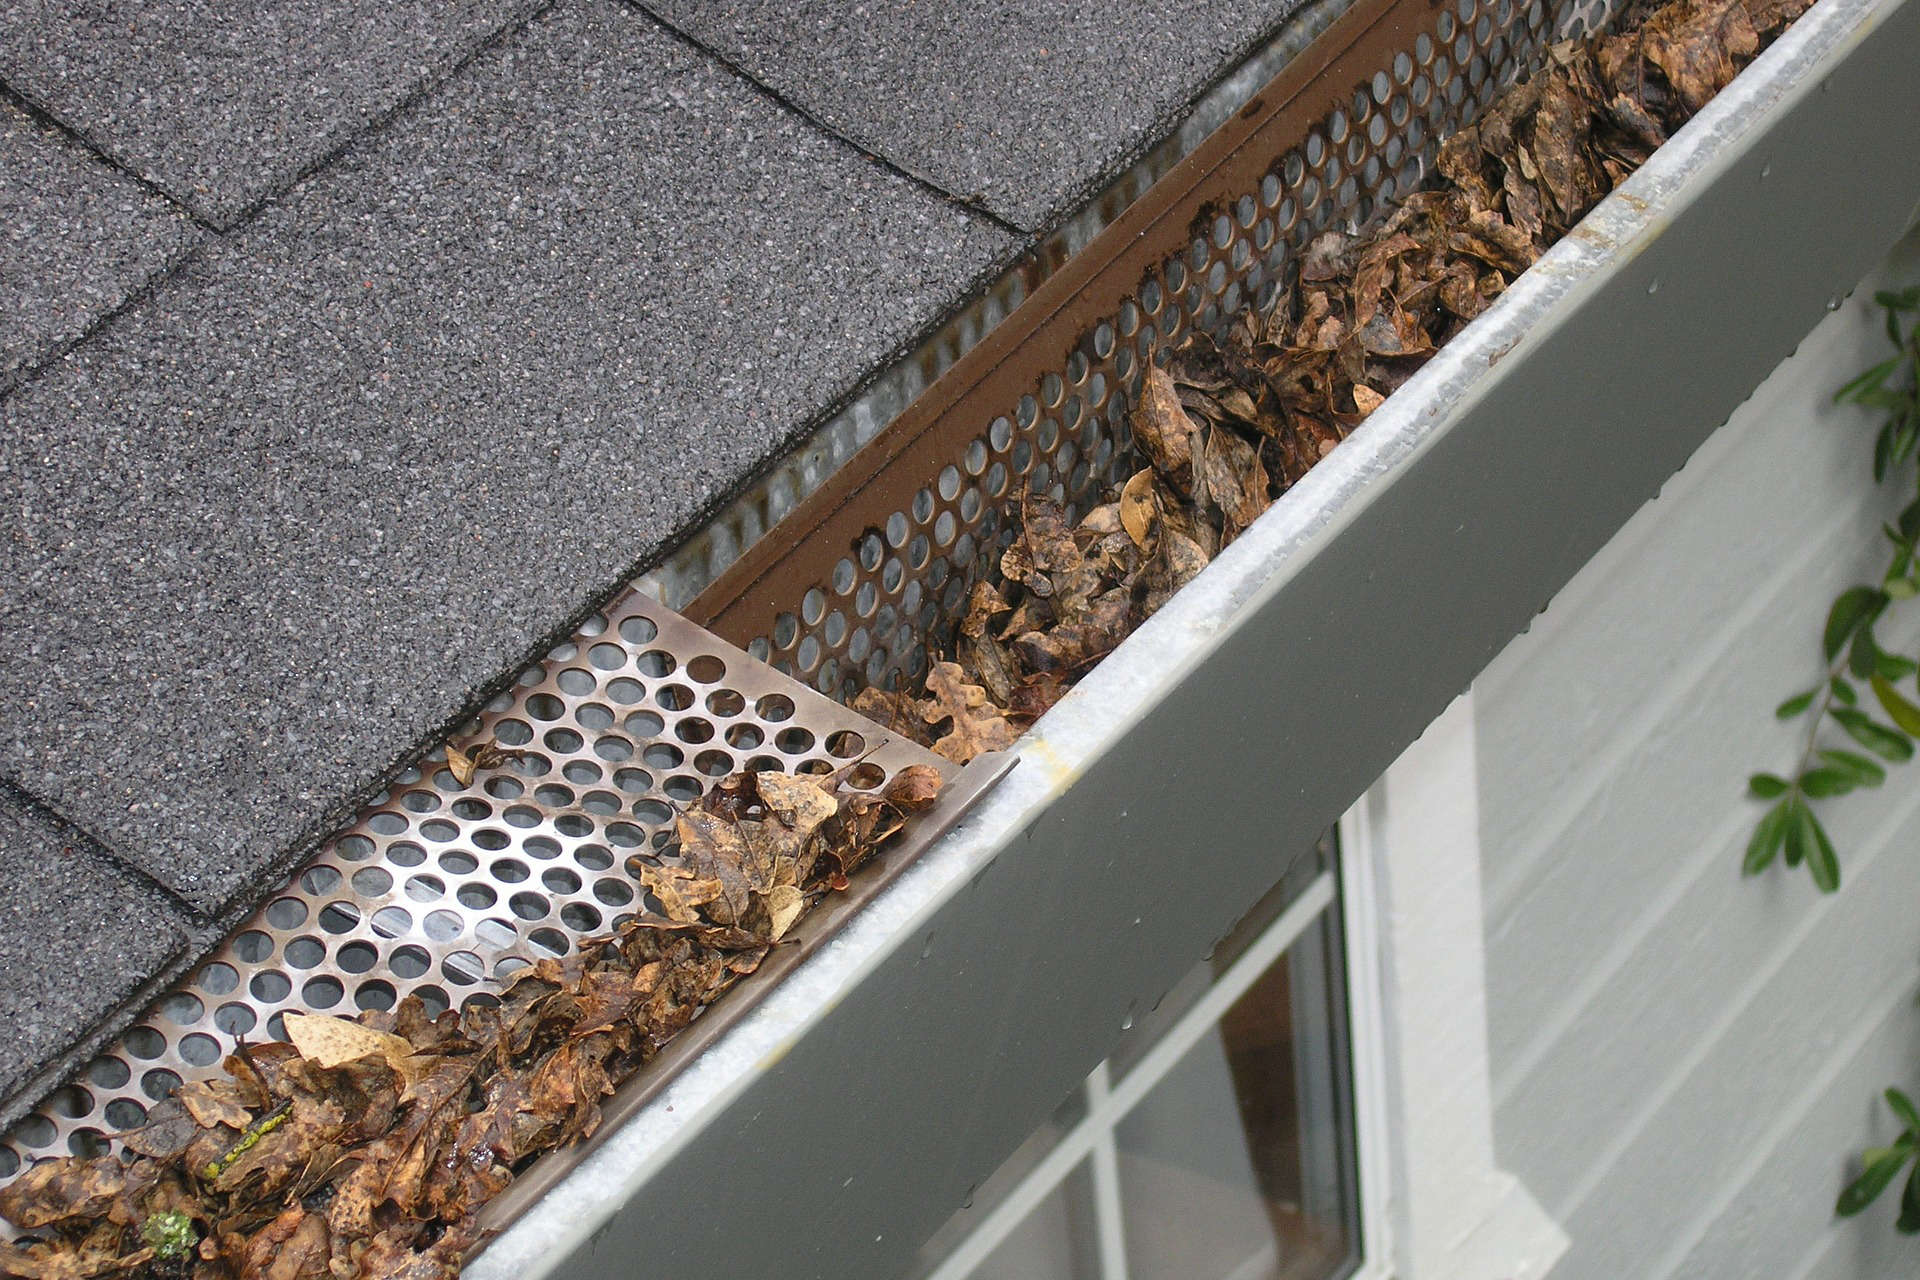 Gutter Cleaning Downspout Cleaning Service Am Gutter